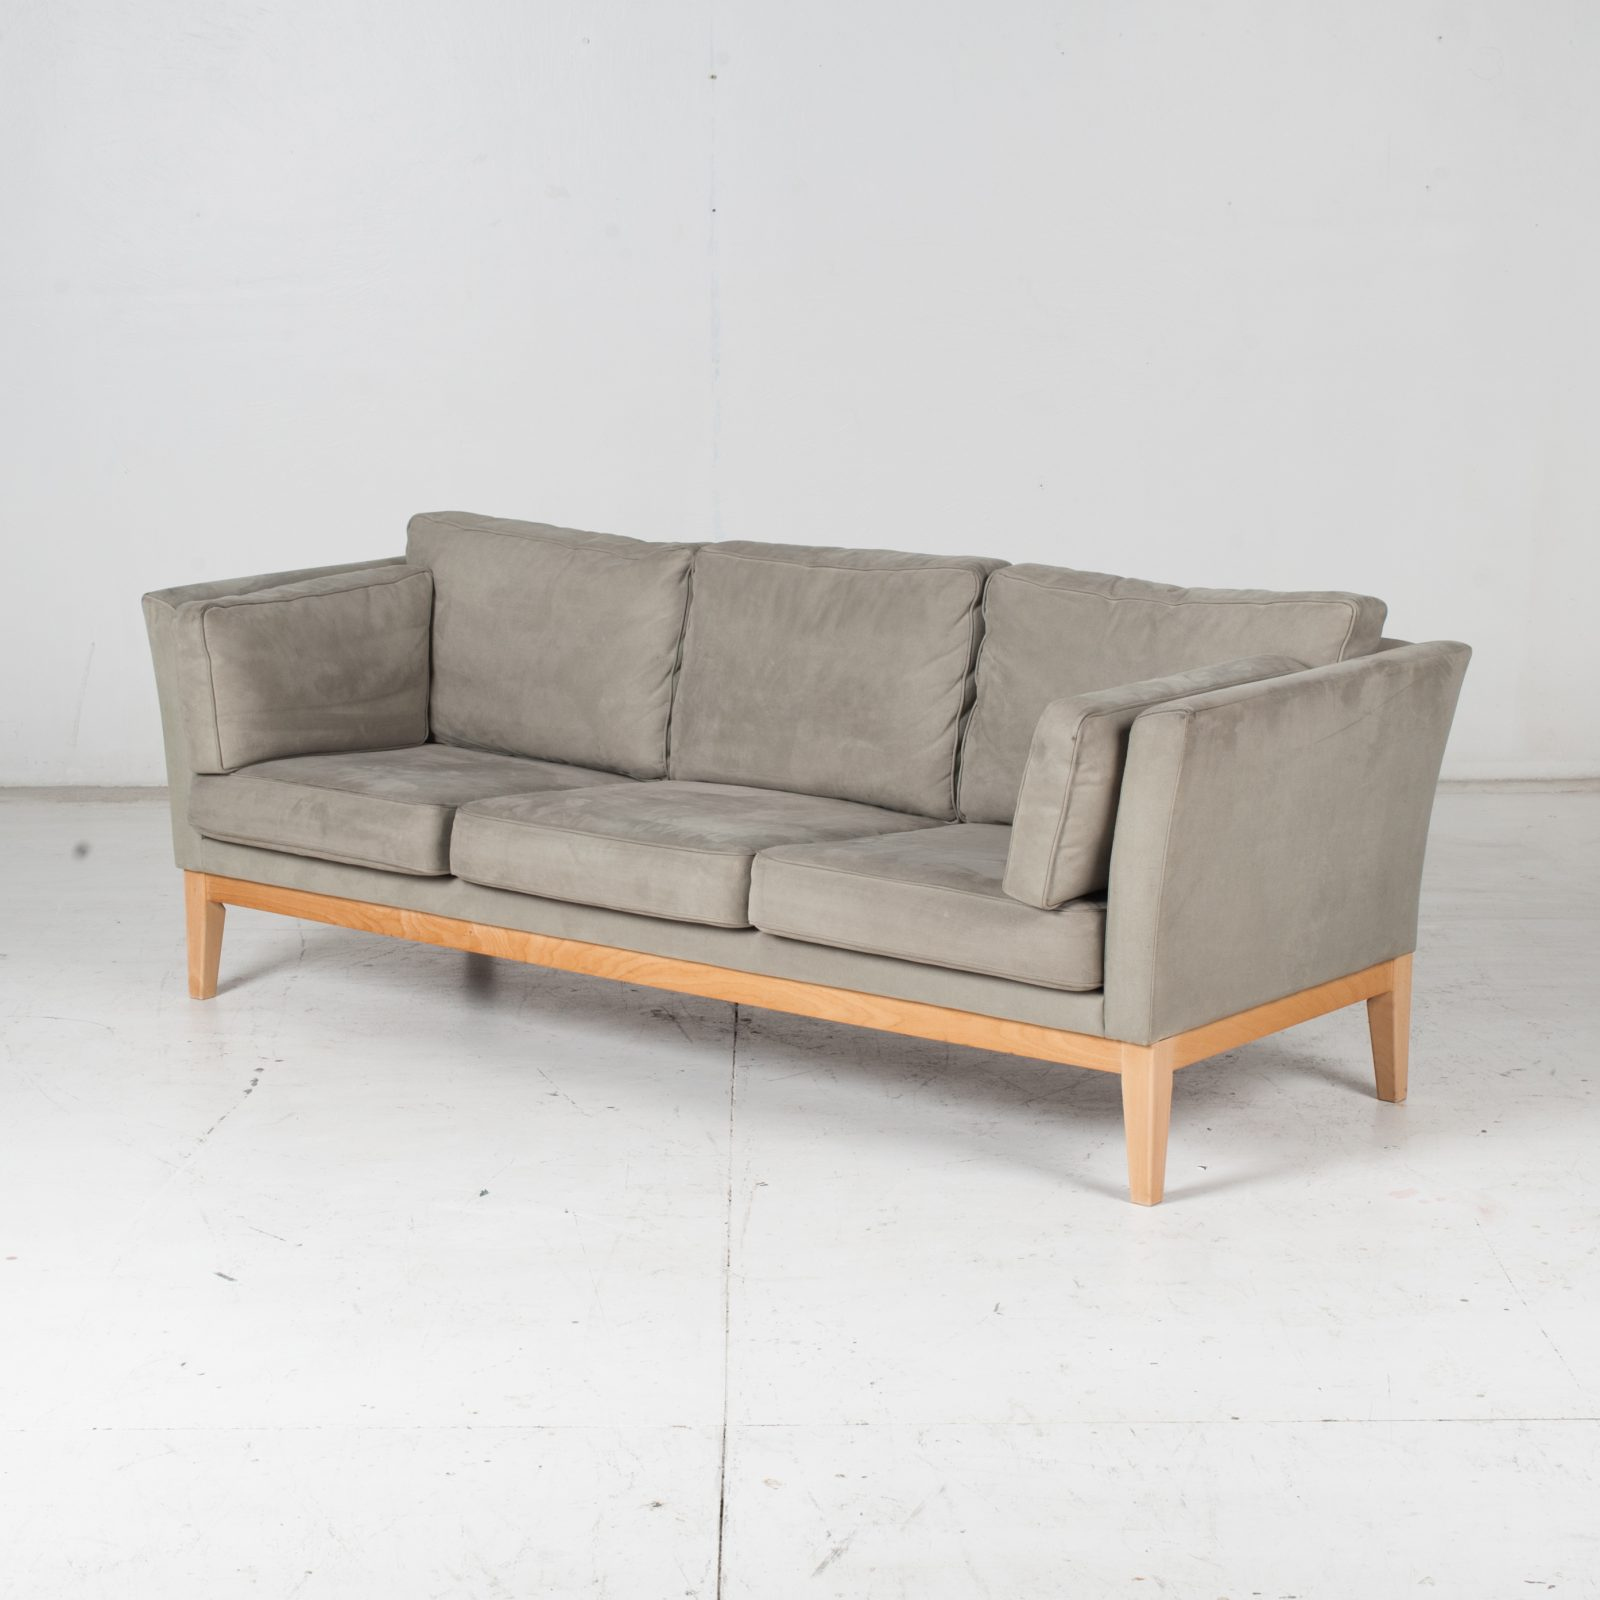 3 Seat Sofa By Stouby In Grey Macro Suede, 1960s, Denmark Highres